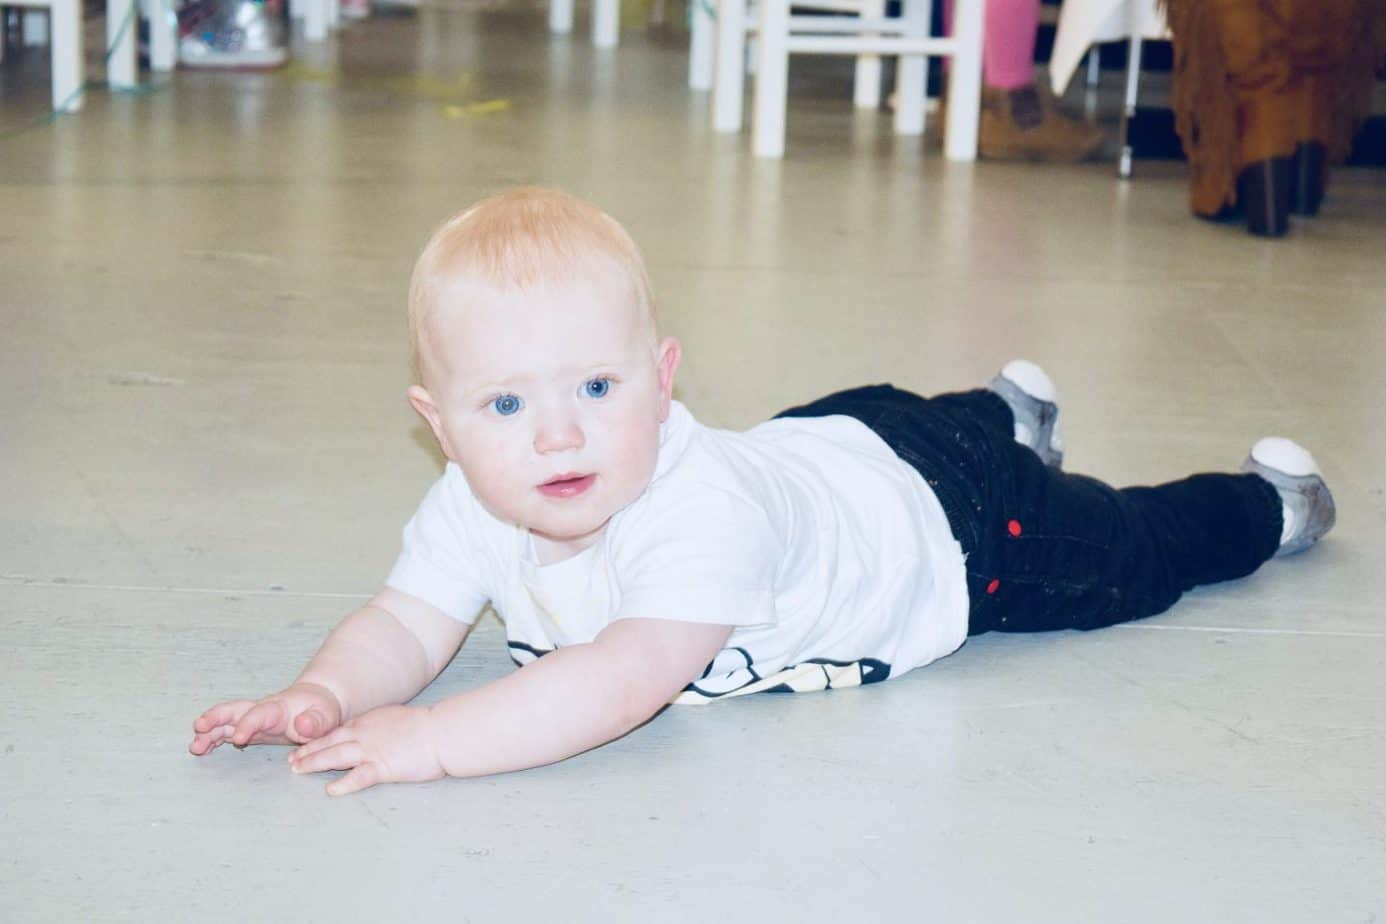 Baby K on the floor at Yellow Zebra Safaris event